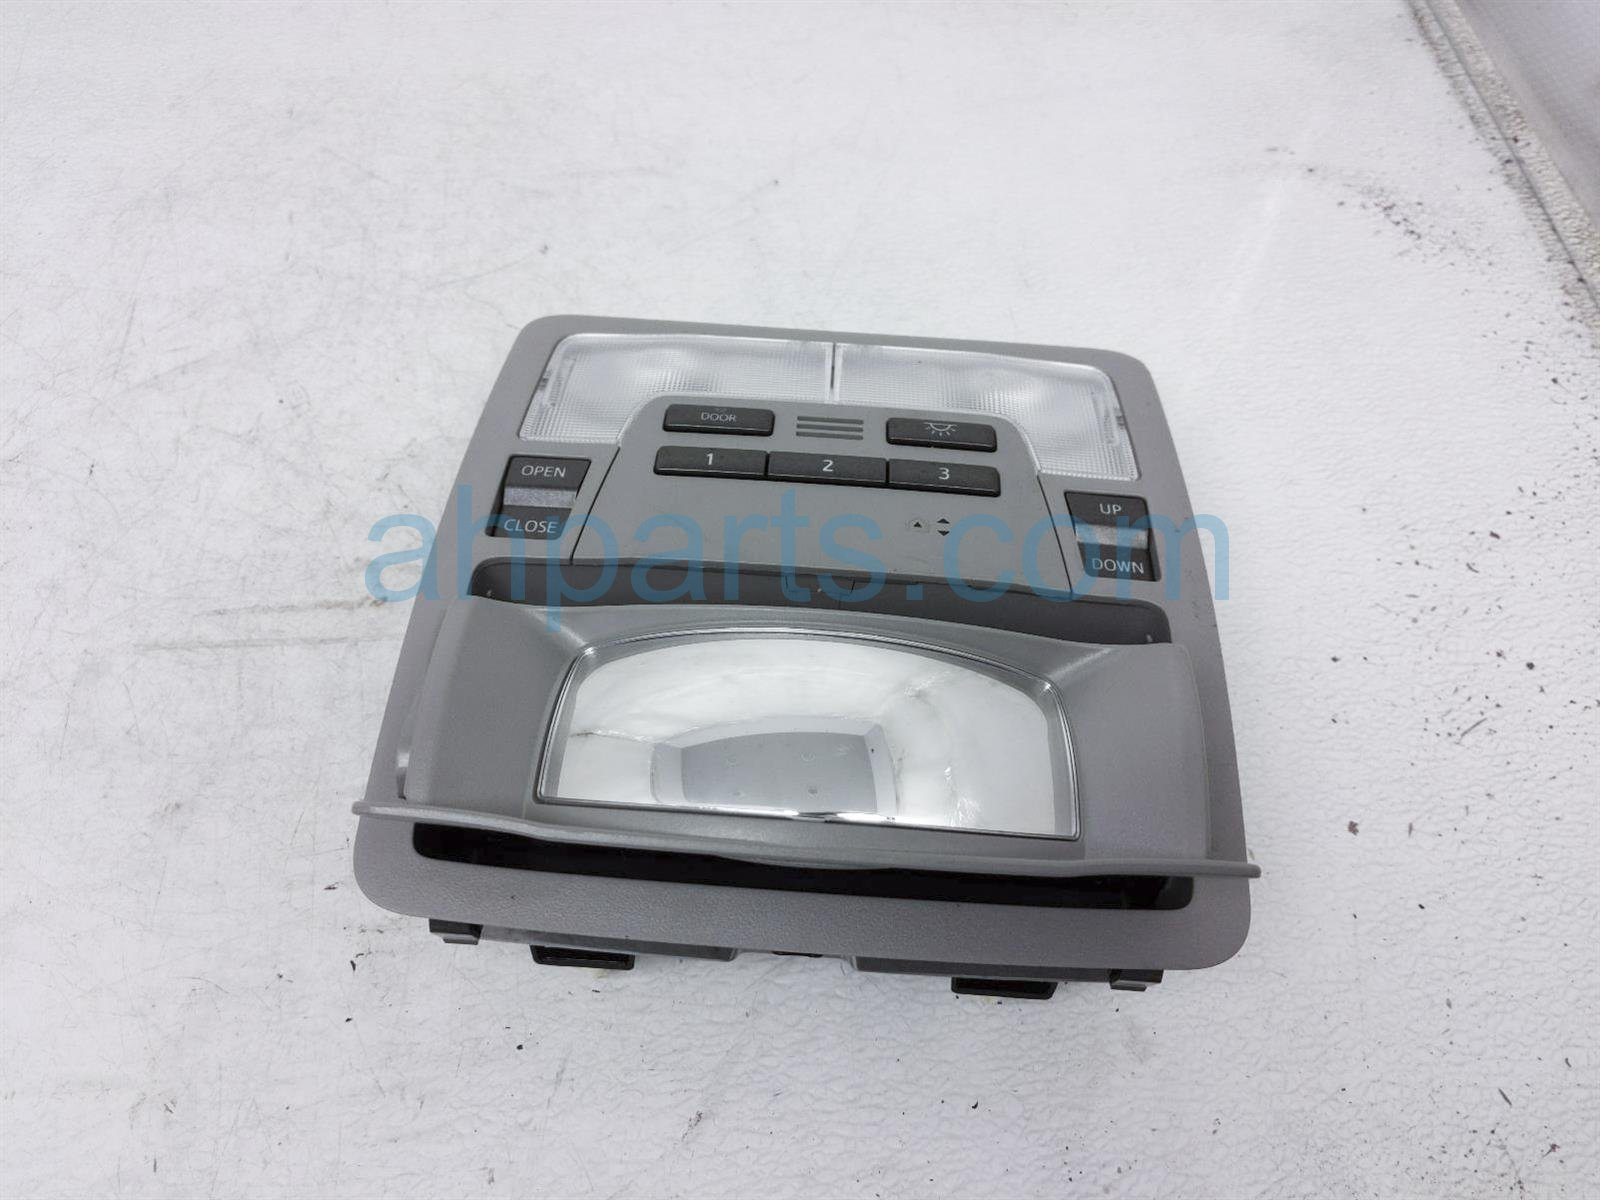 2014 Toyota Highlander Map Light / Overhead Console   Gray 63650 0E150 B0 Replacement